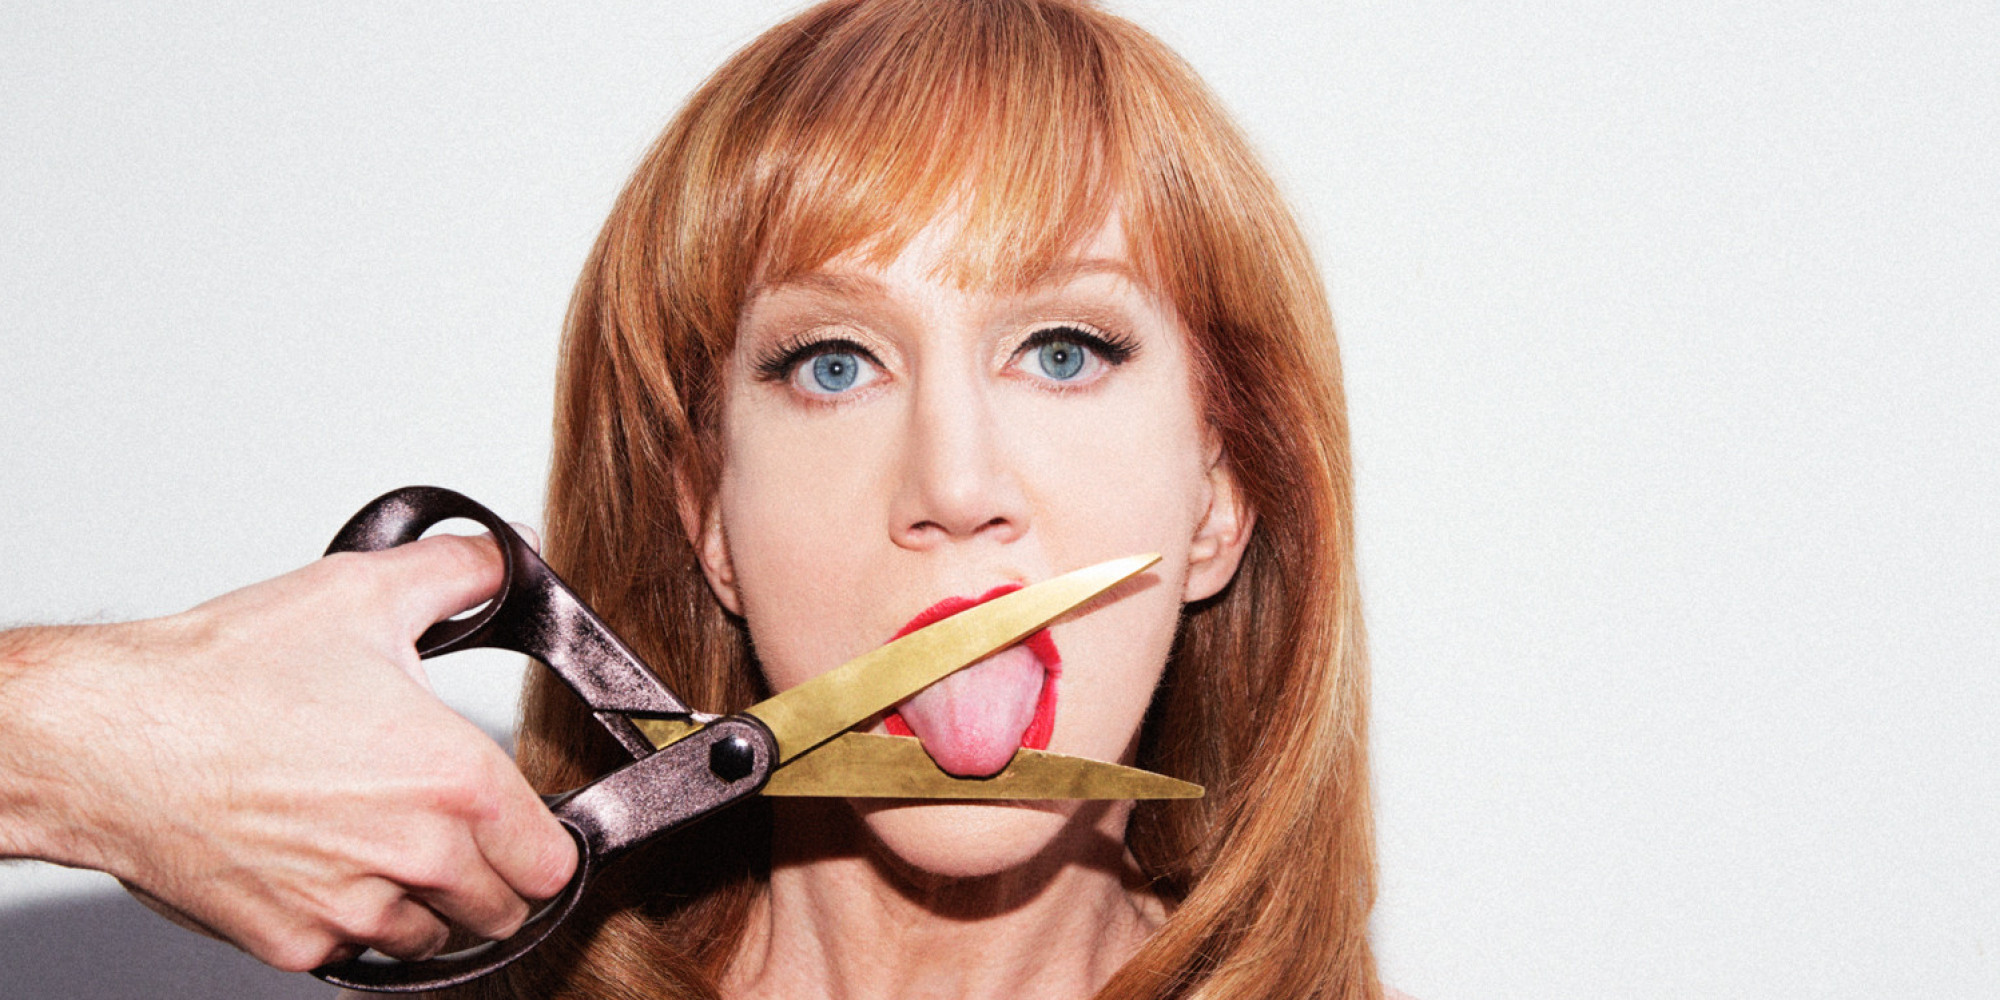 Kathy Griffen cut her own tounge off